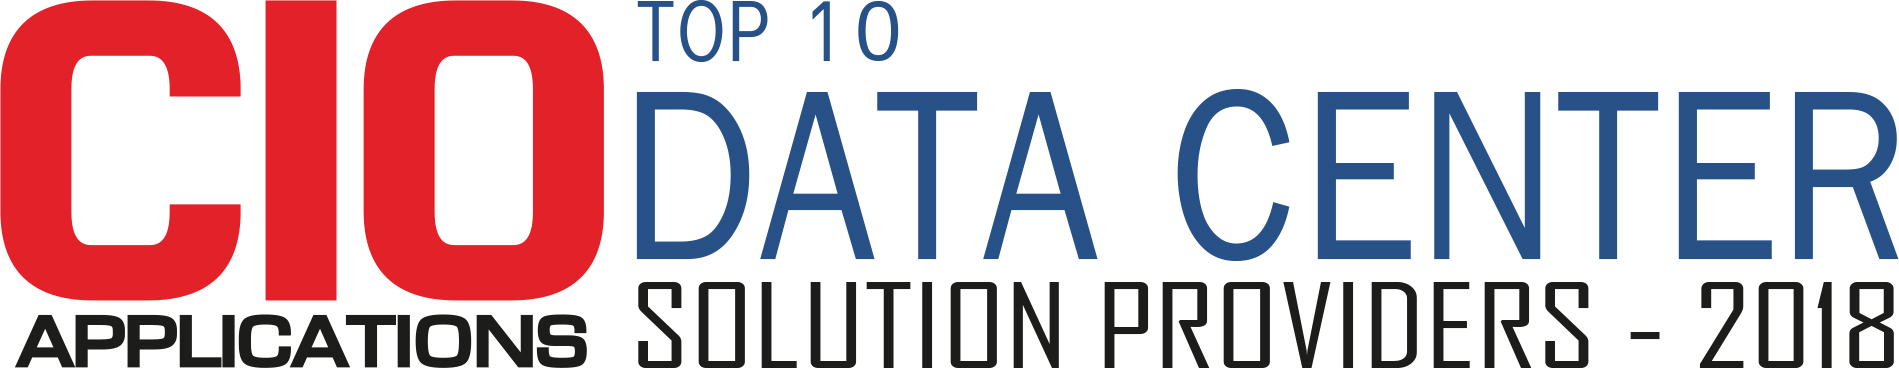 Top 10 Companies Providing Data Center Solution  - 2018